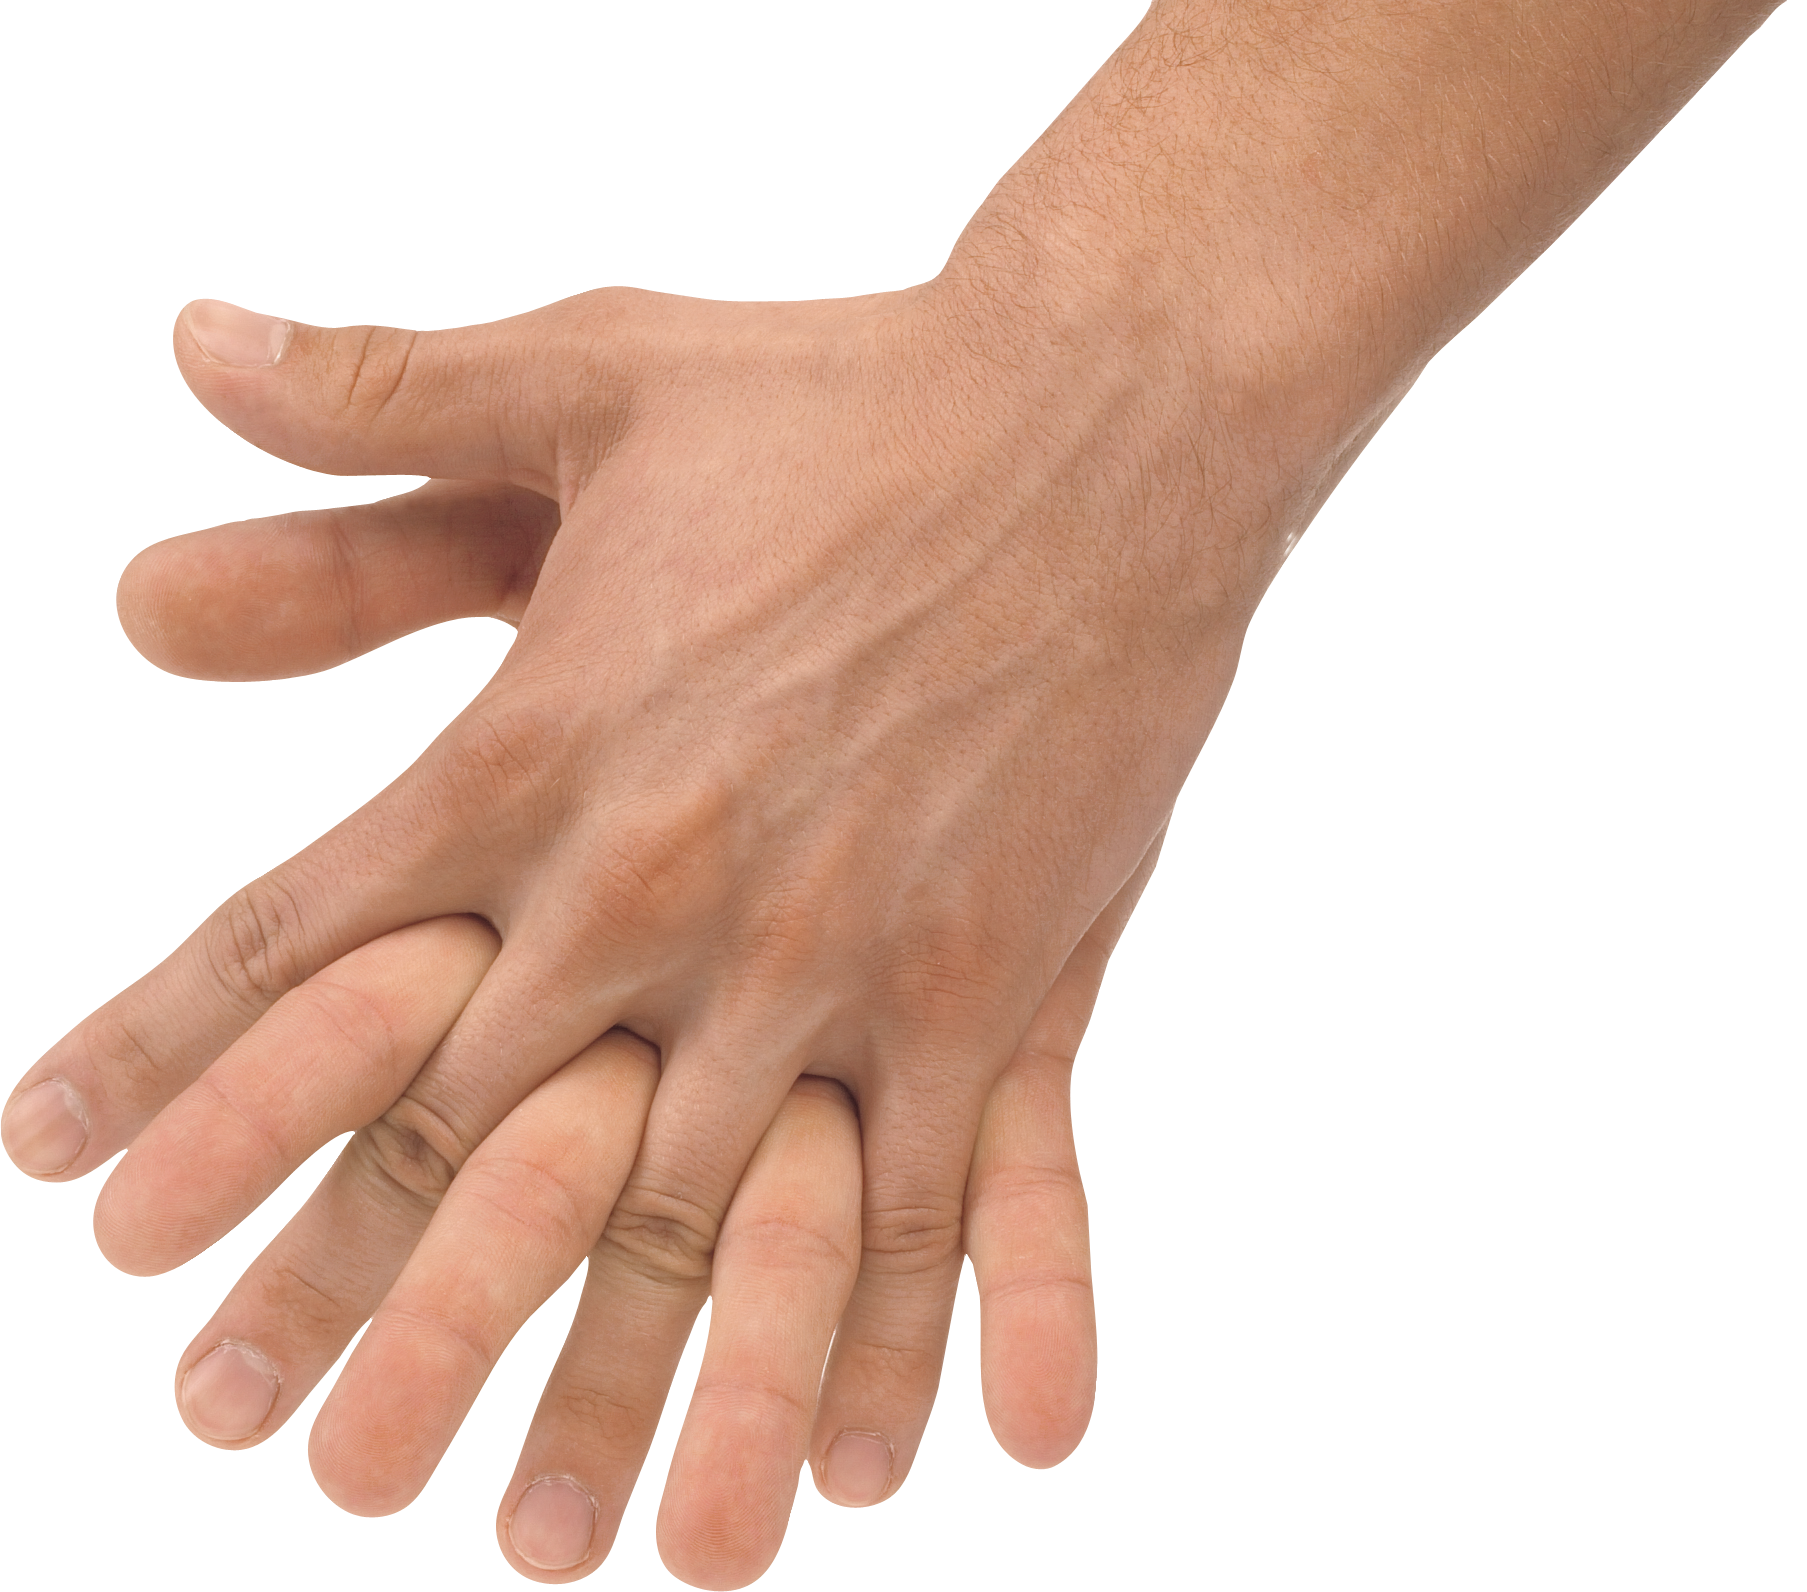 Two Hands, Arm Png image #44753